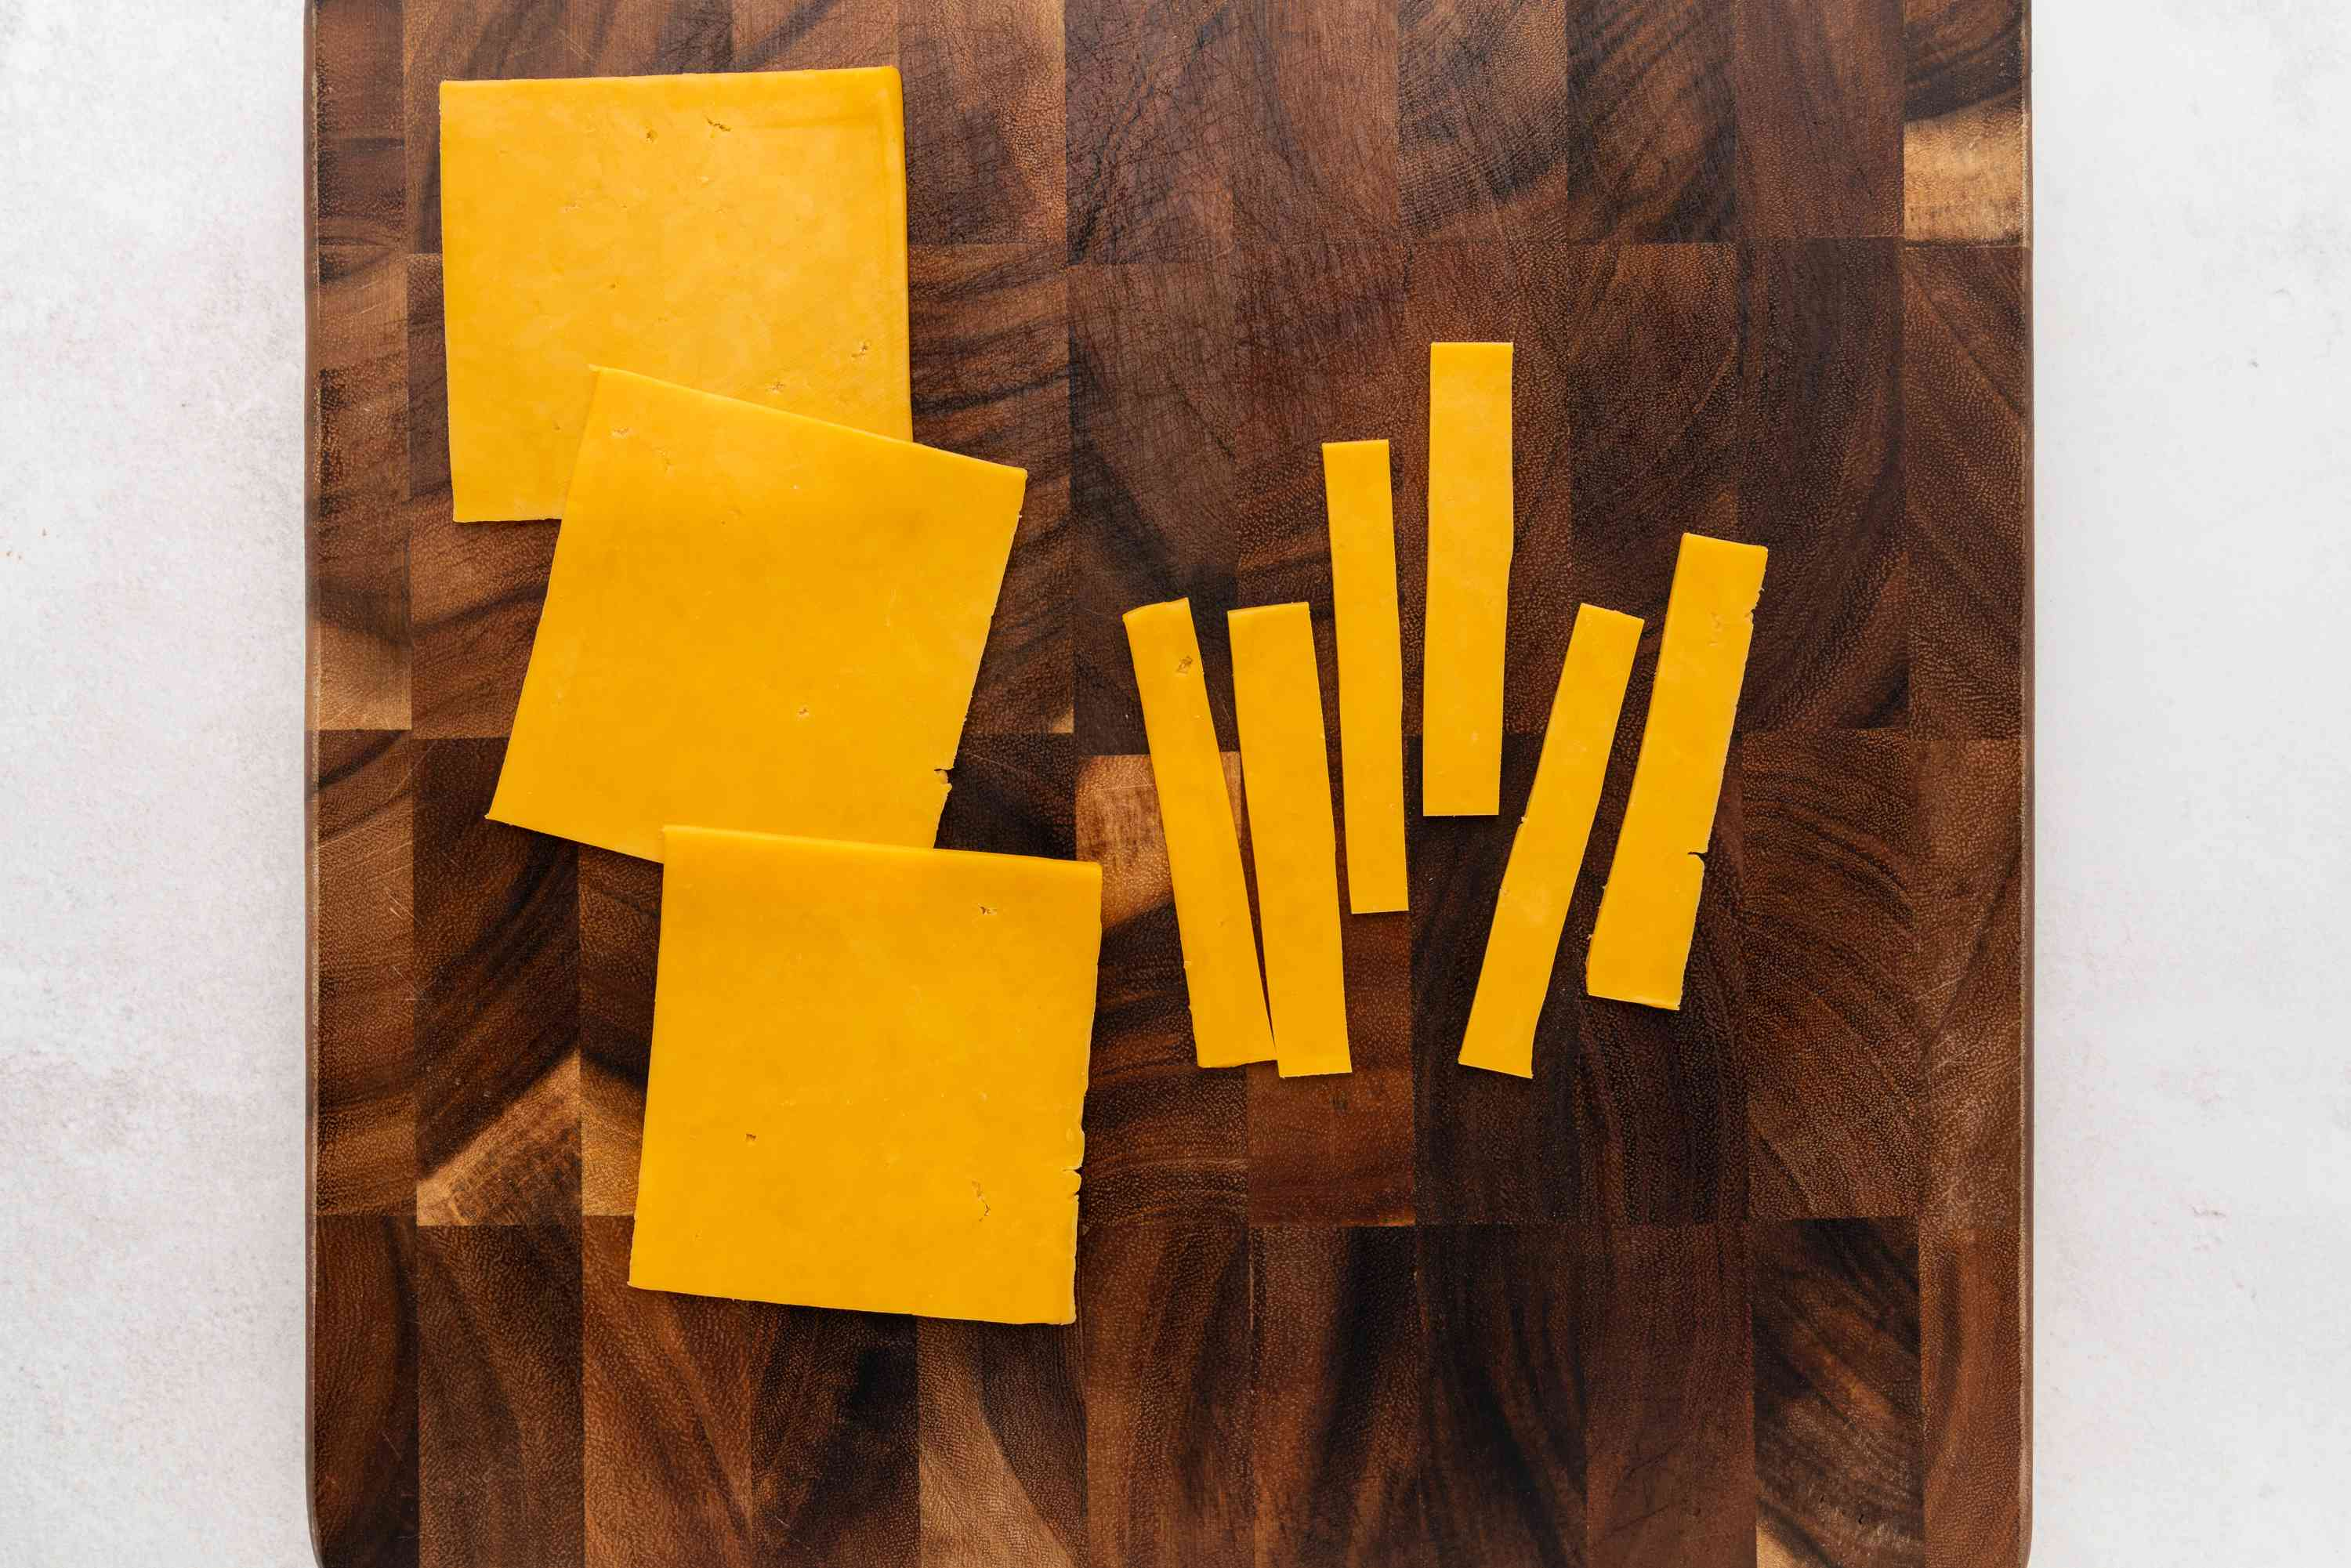 Cheese slices cut into pieces